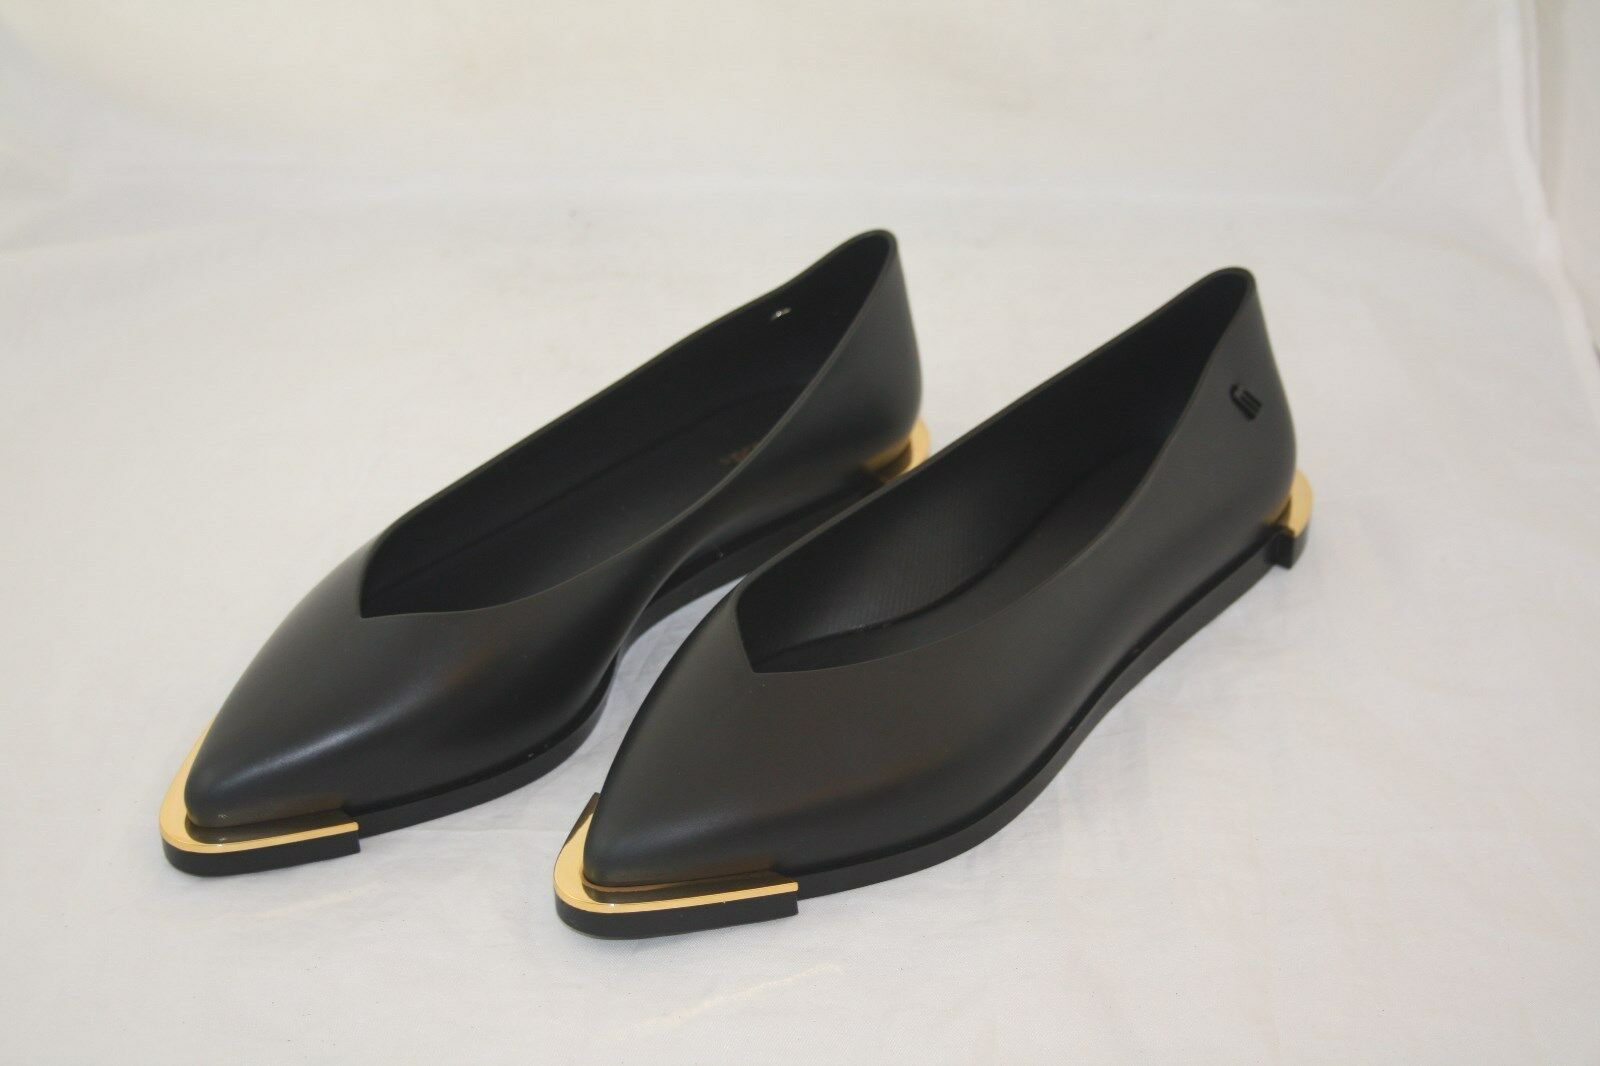 NEW  31475 01003 MELISSA SPICE SP AD 01003 31475 BLACK SLIP ON SIZE 9 571585